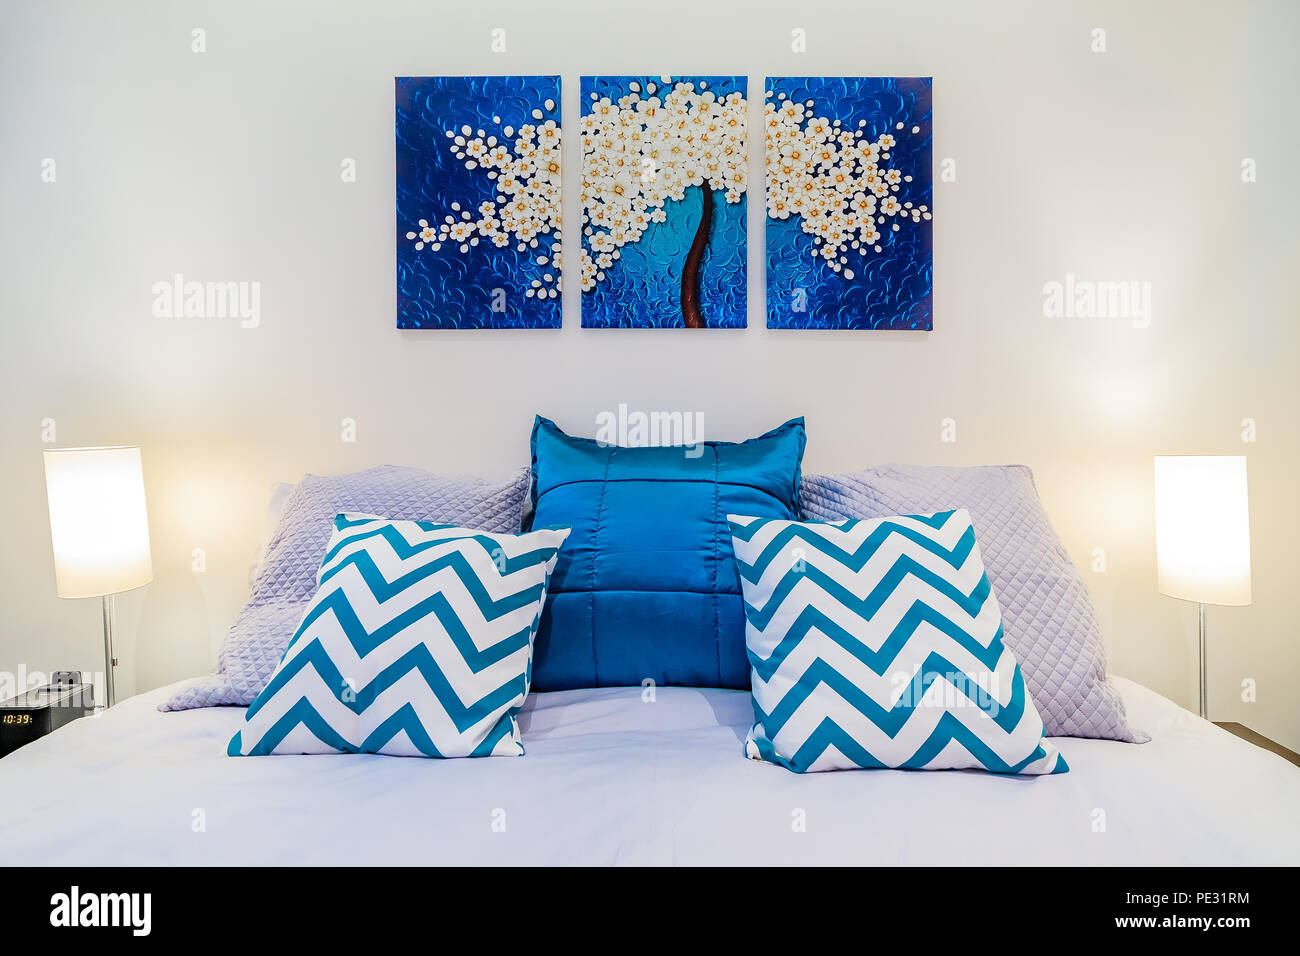 https www alamy com large bed with linnens and bright blue pillows in a modern bedroom wall art painting and lights image215196904 html